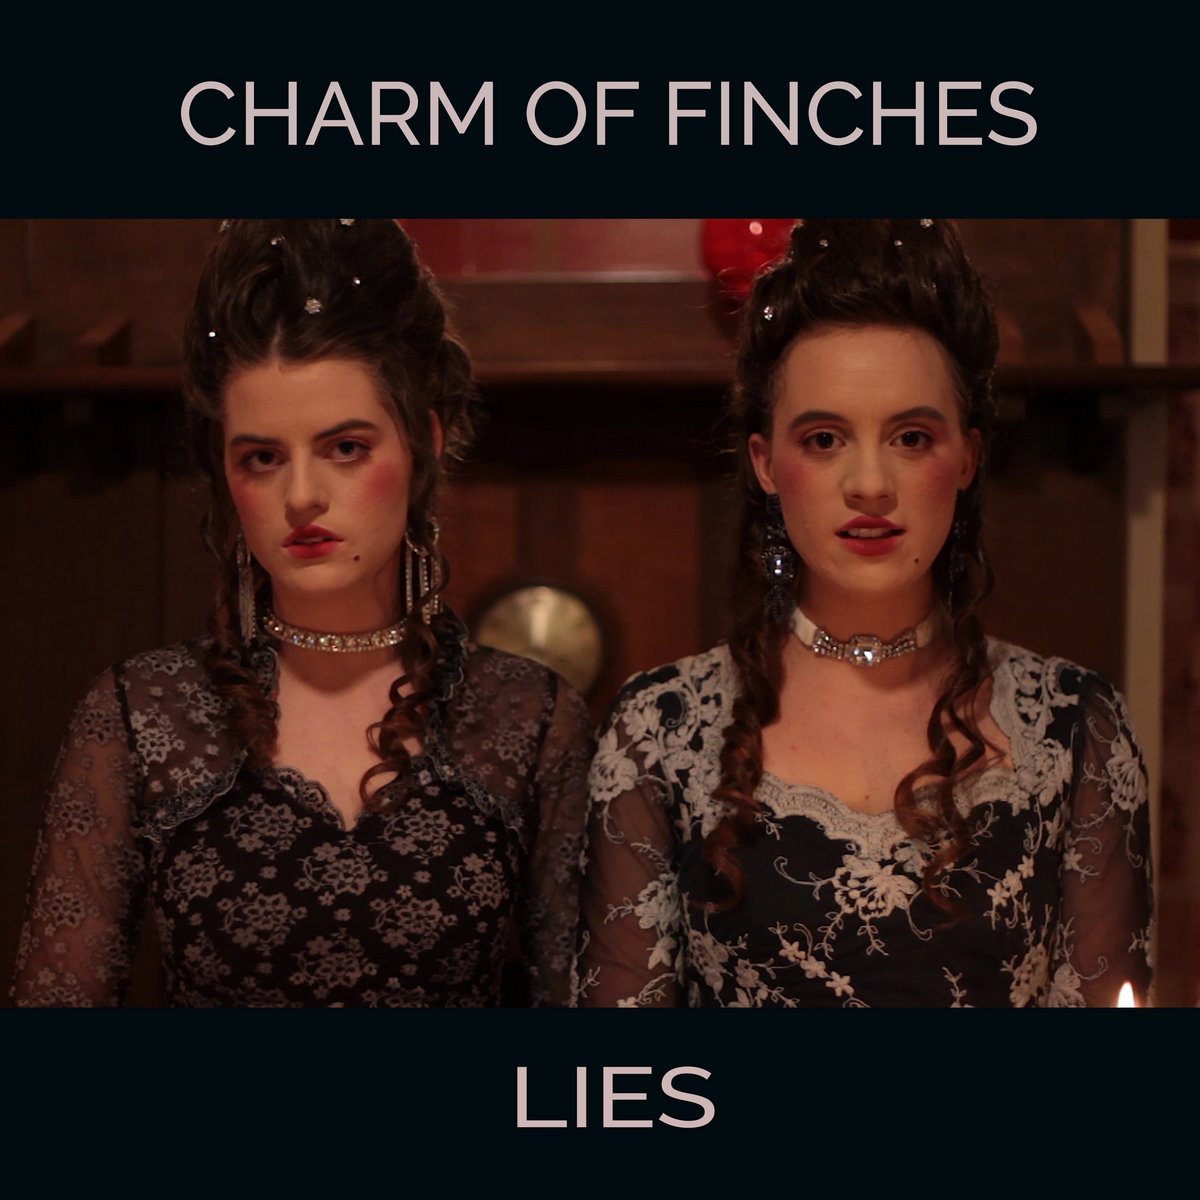 Lies by Charm of Finches